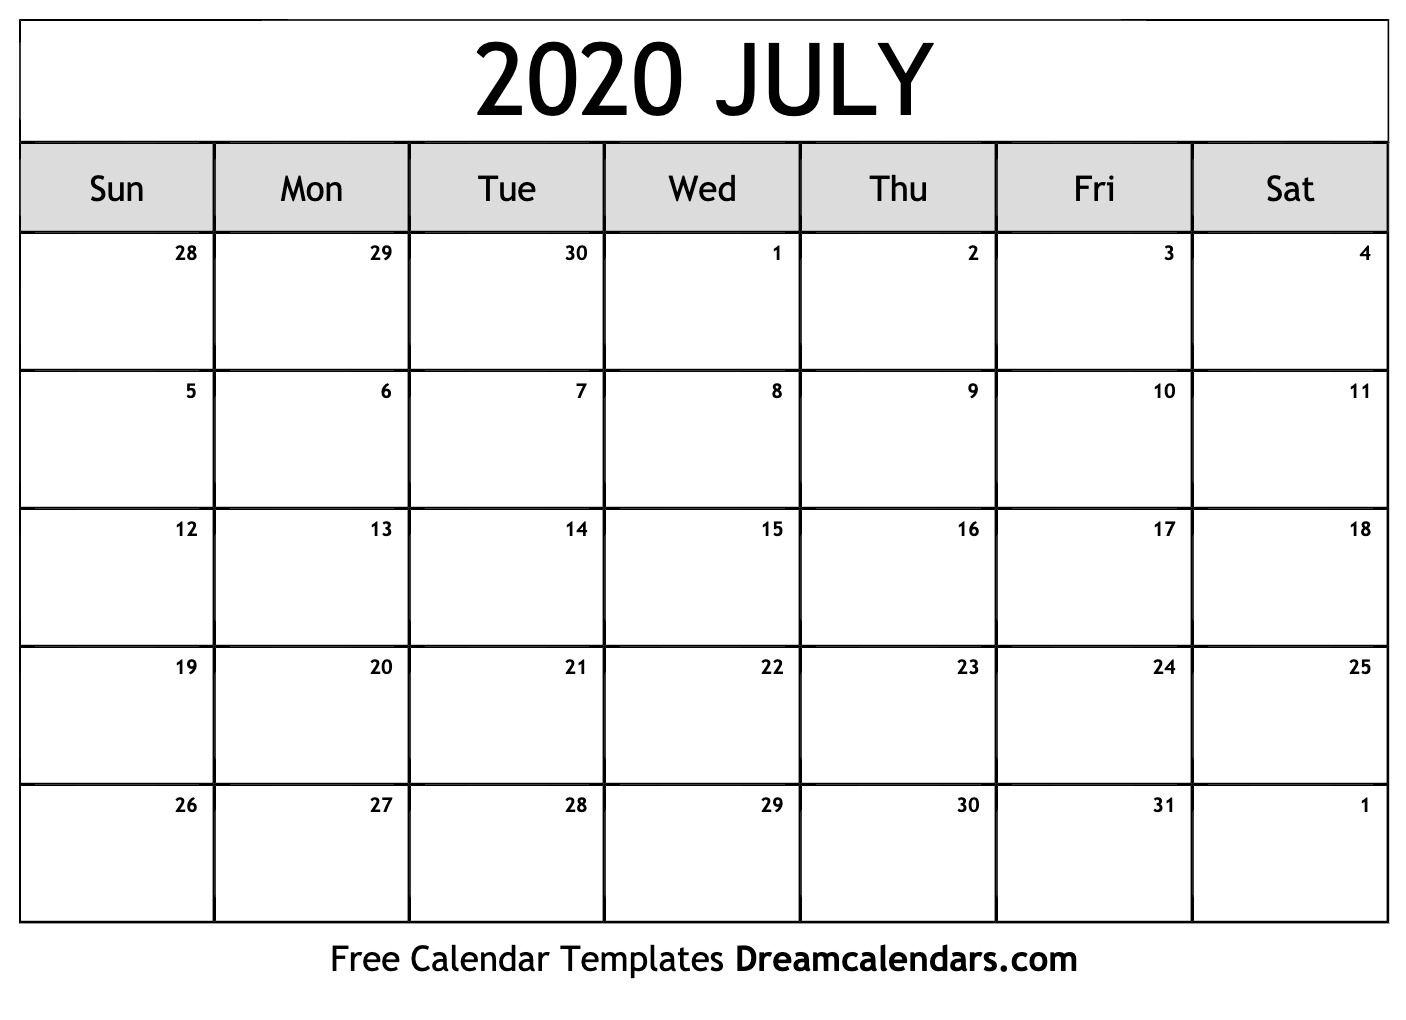 image regarding Calendar for July Printable named Printable July 2020 Calendar